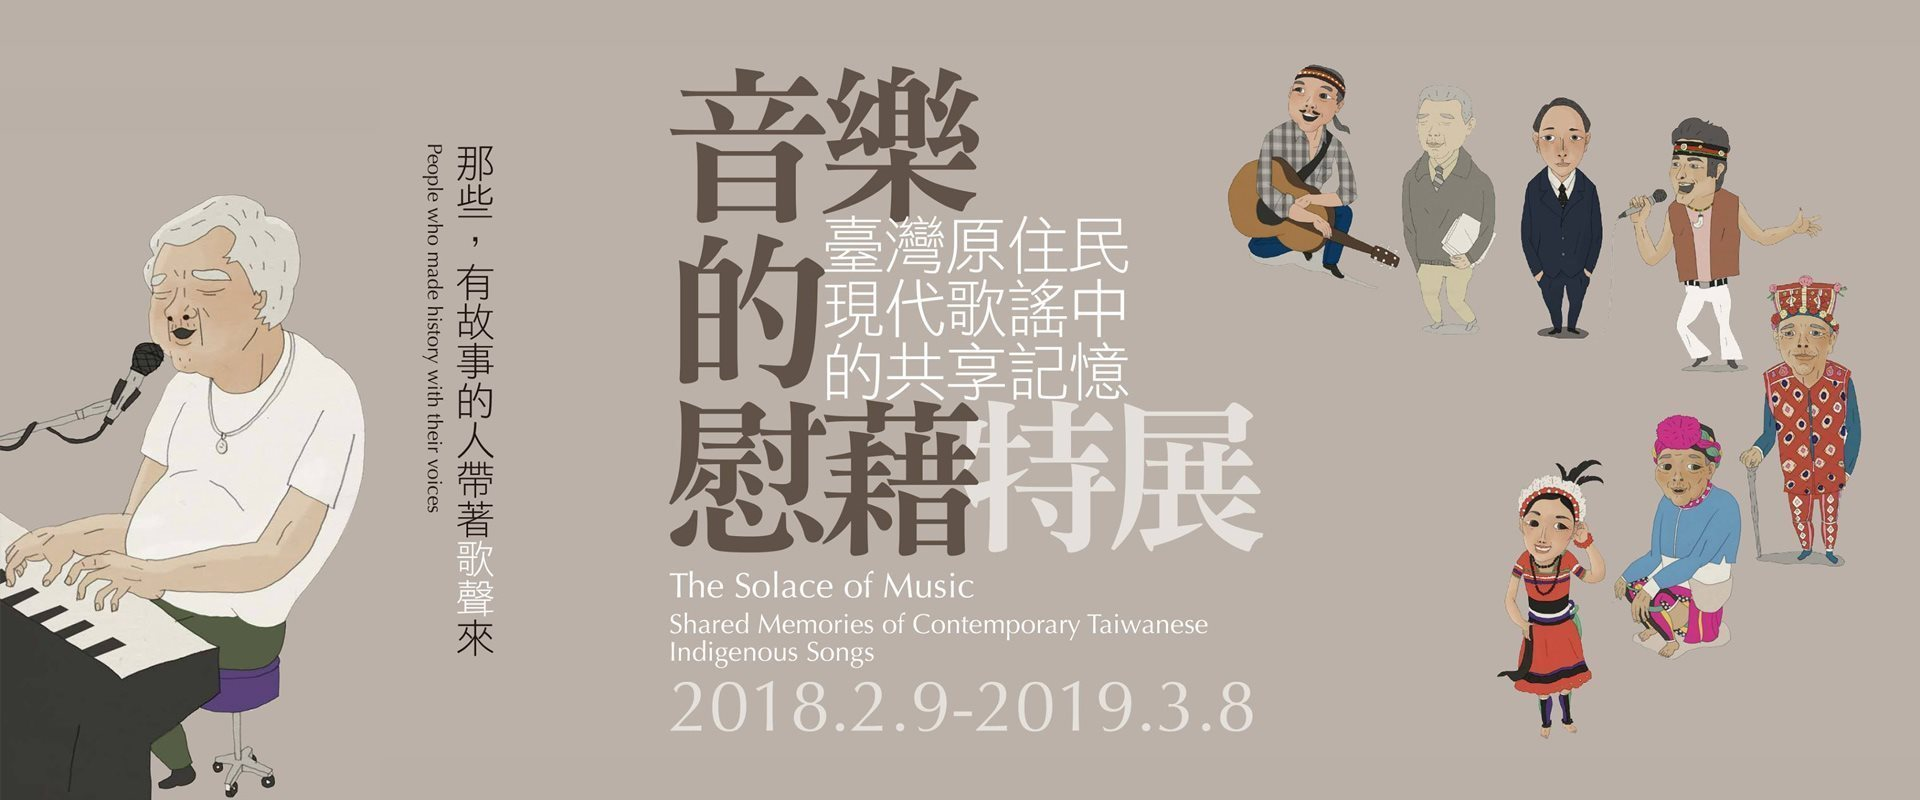 The Solace of Music[另開新視窗]